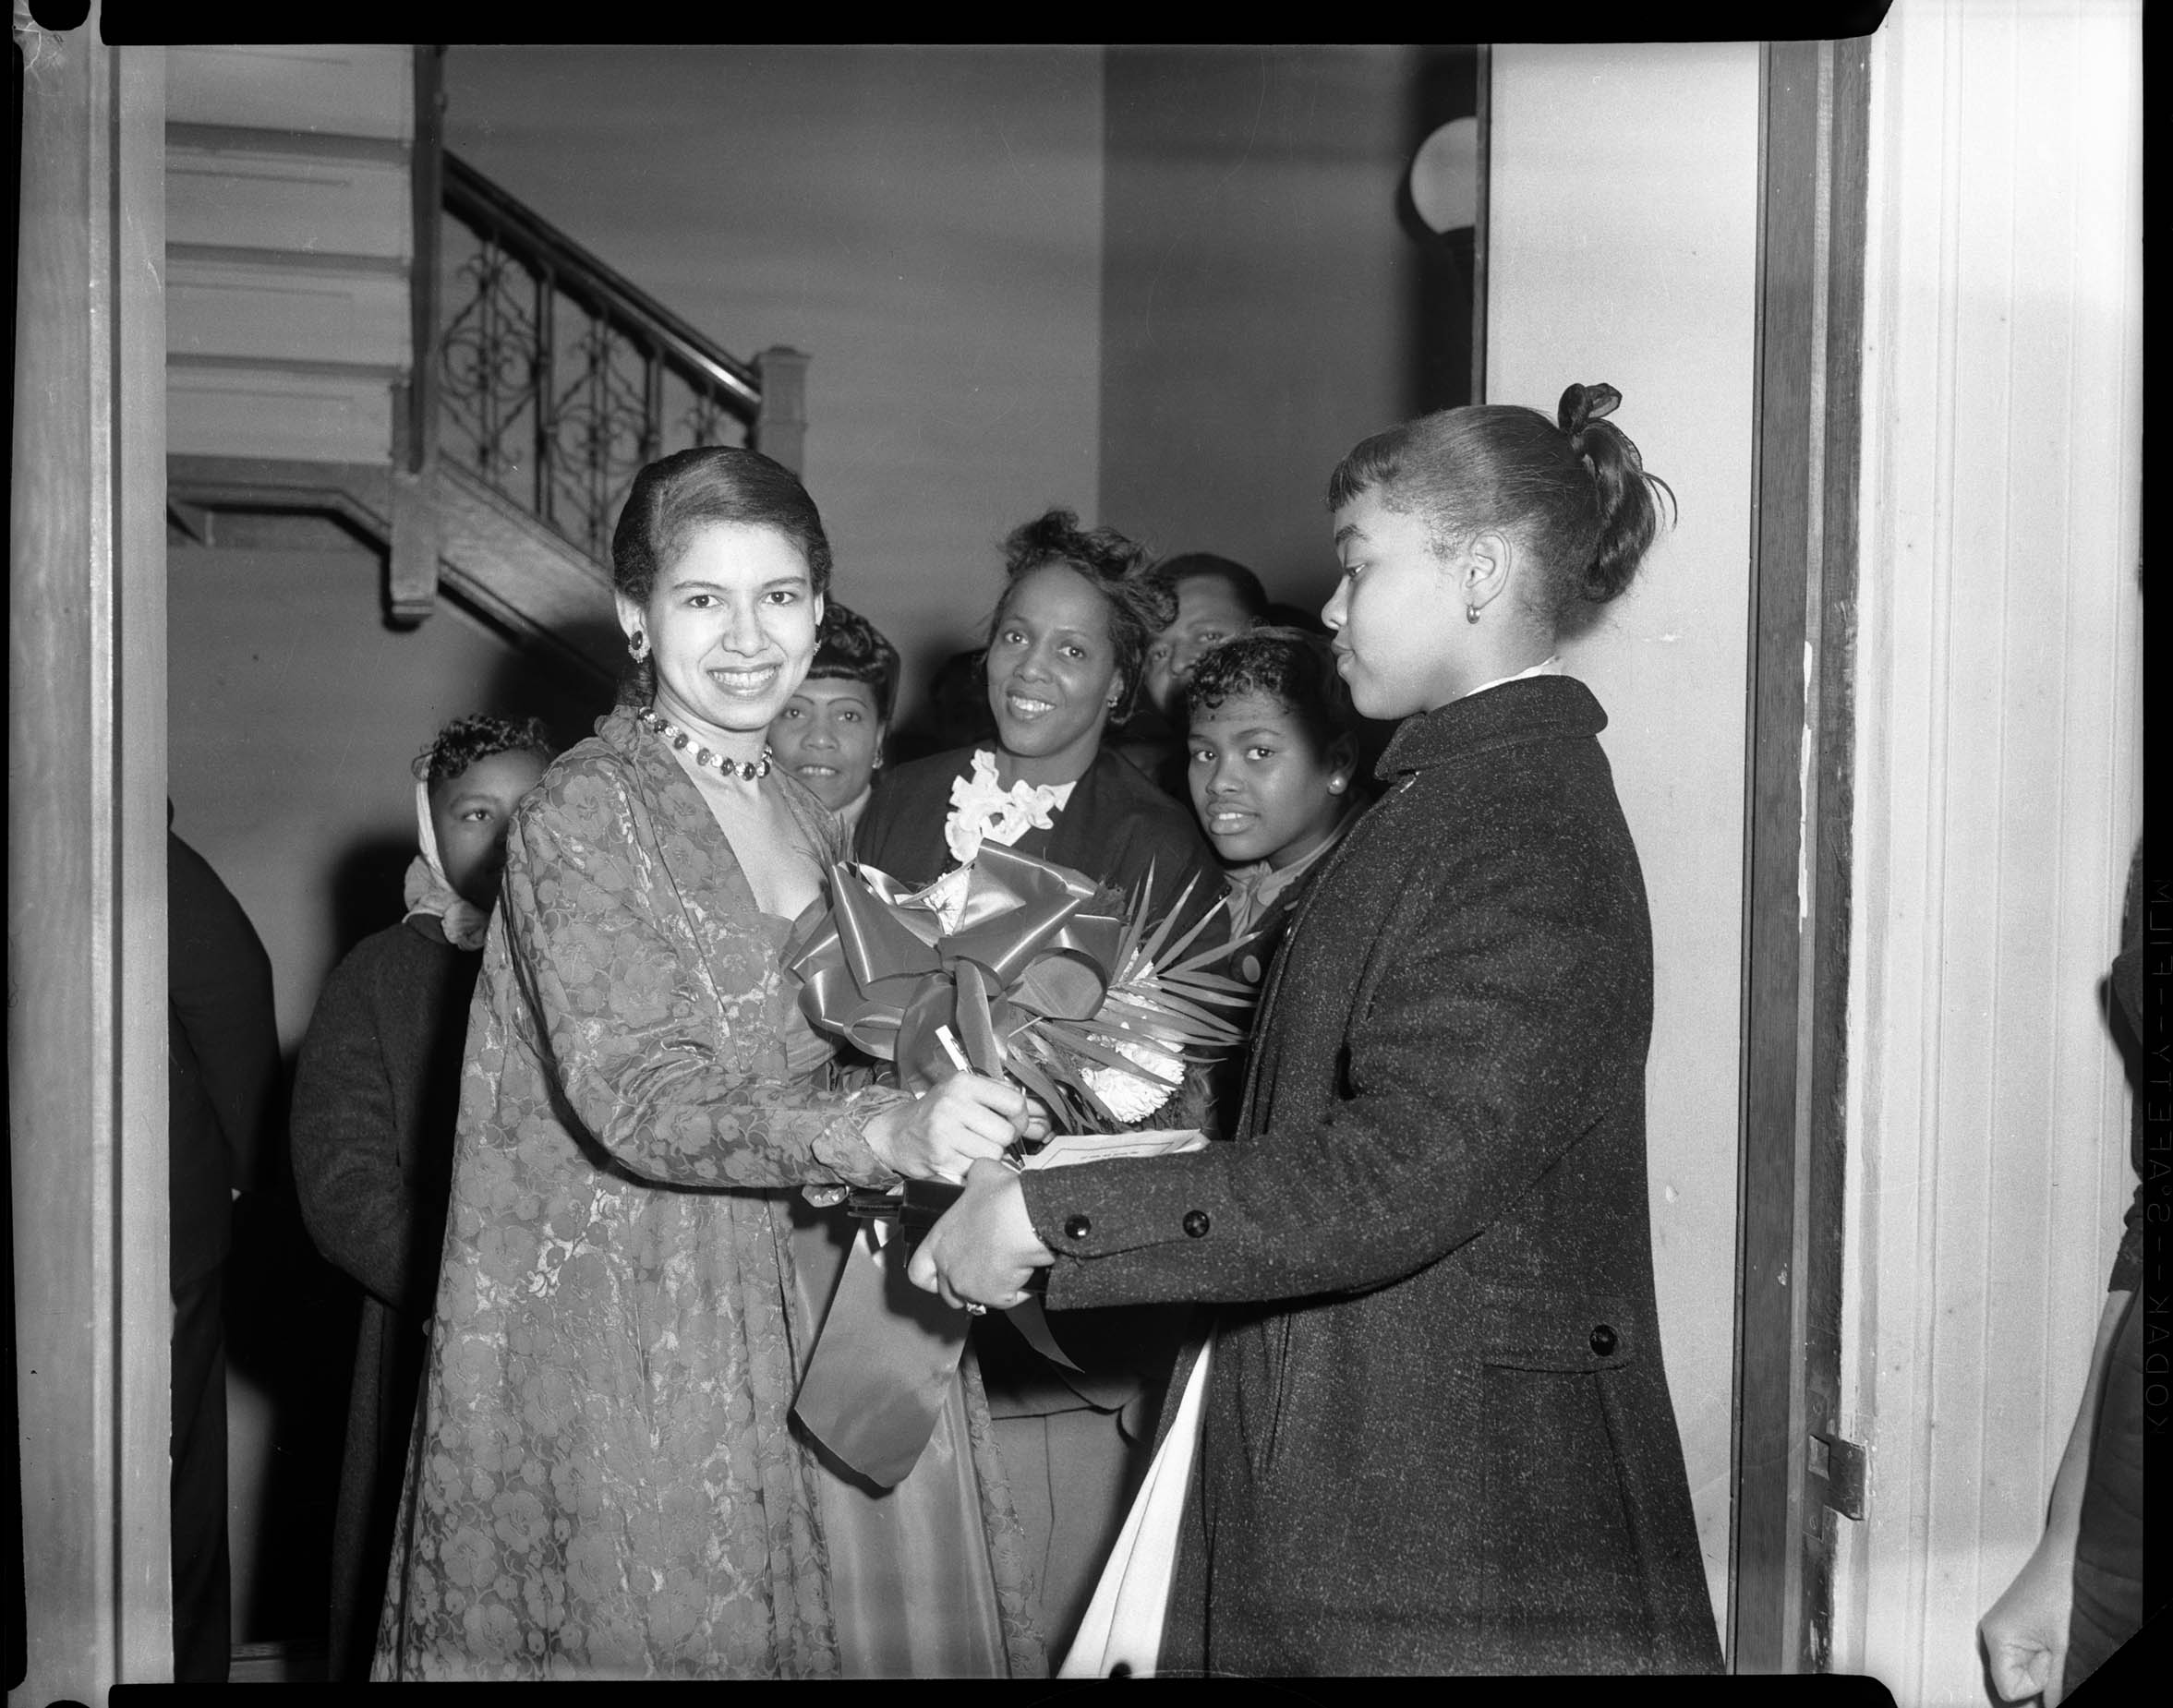 Philippa Duke Schuyler signing autograph for girl, in